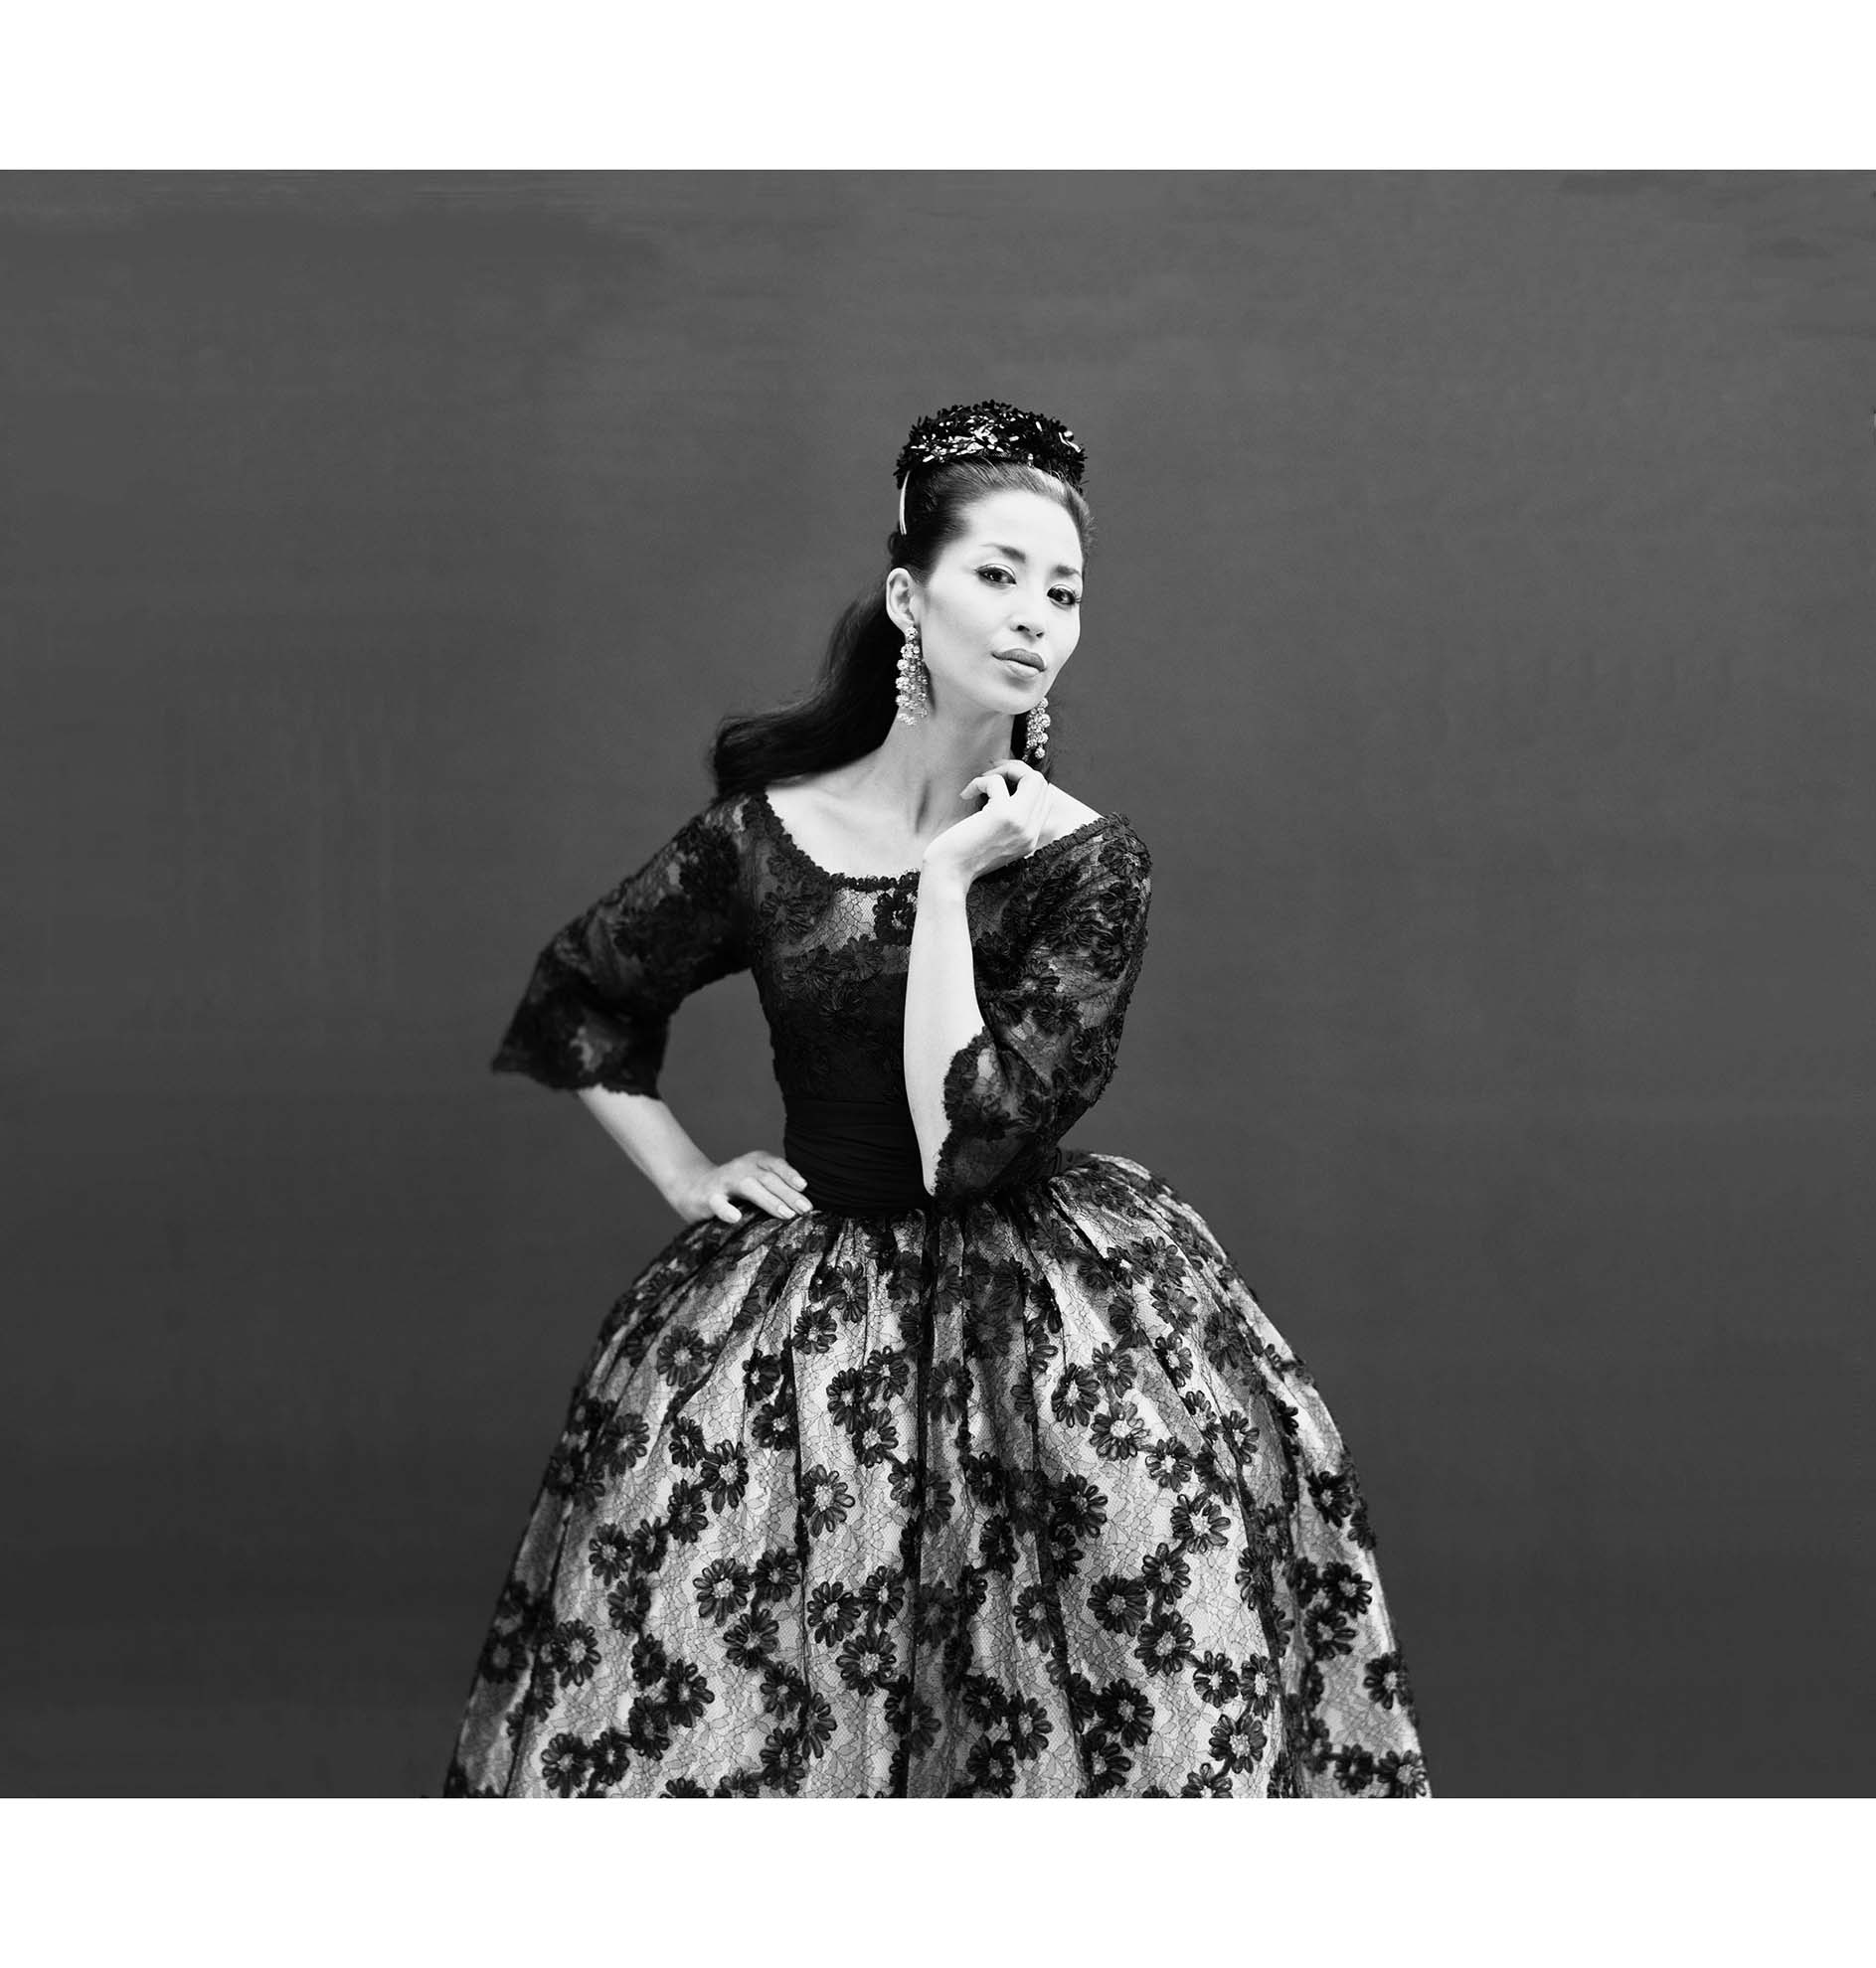 Jacques griffe pleasurephoto china machado in lace evening gown by jacques griffe1959 richard avedon publicscrutiny Choice Image